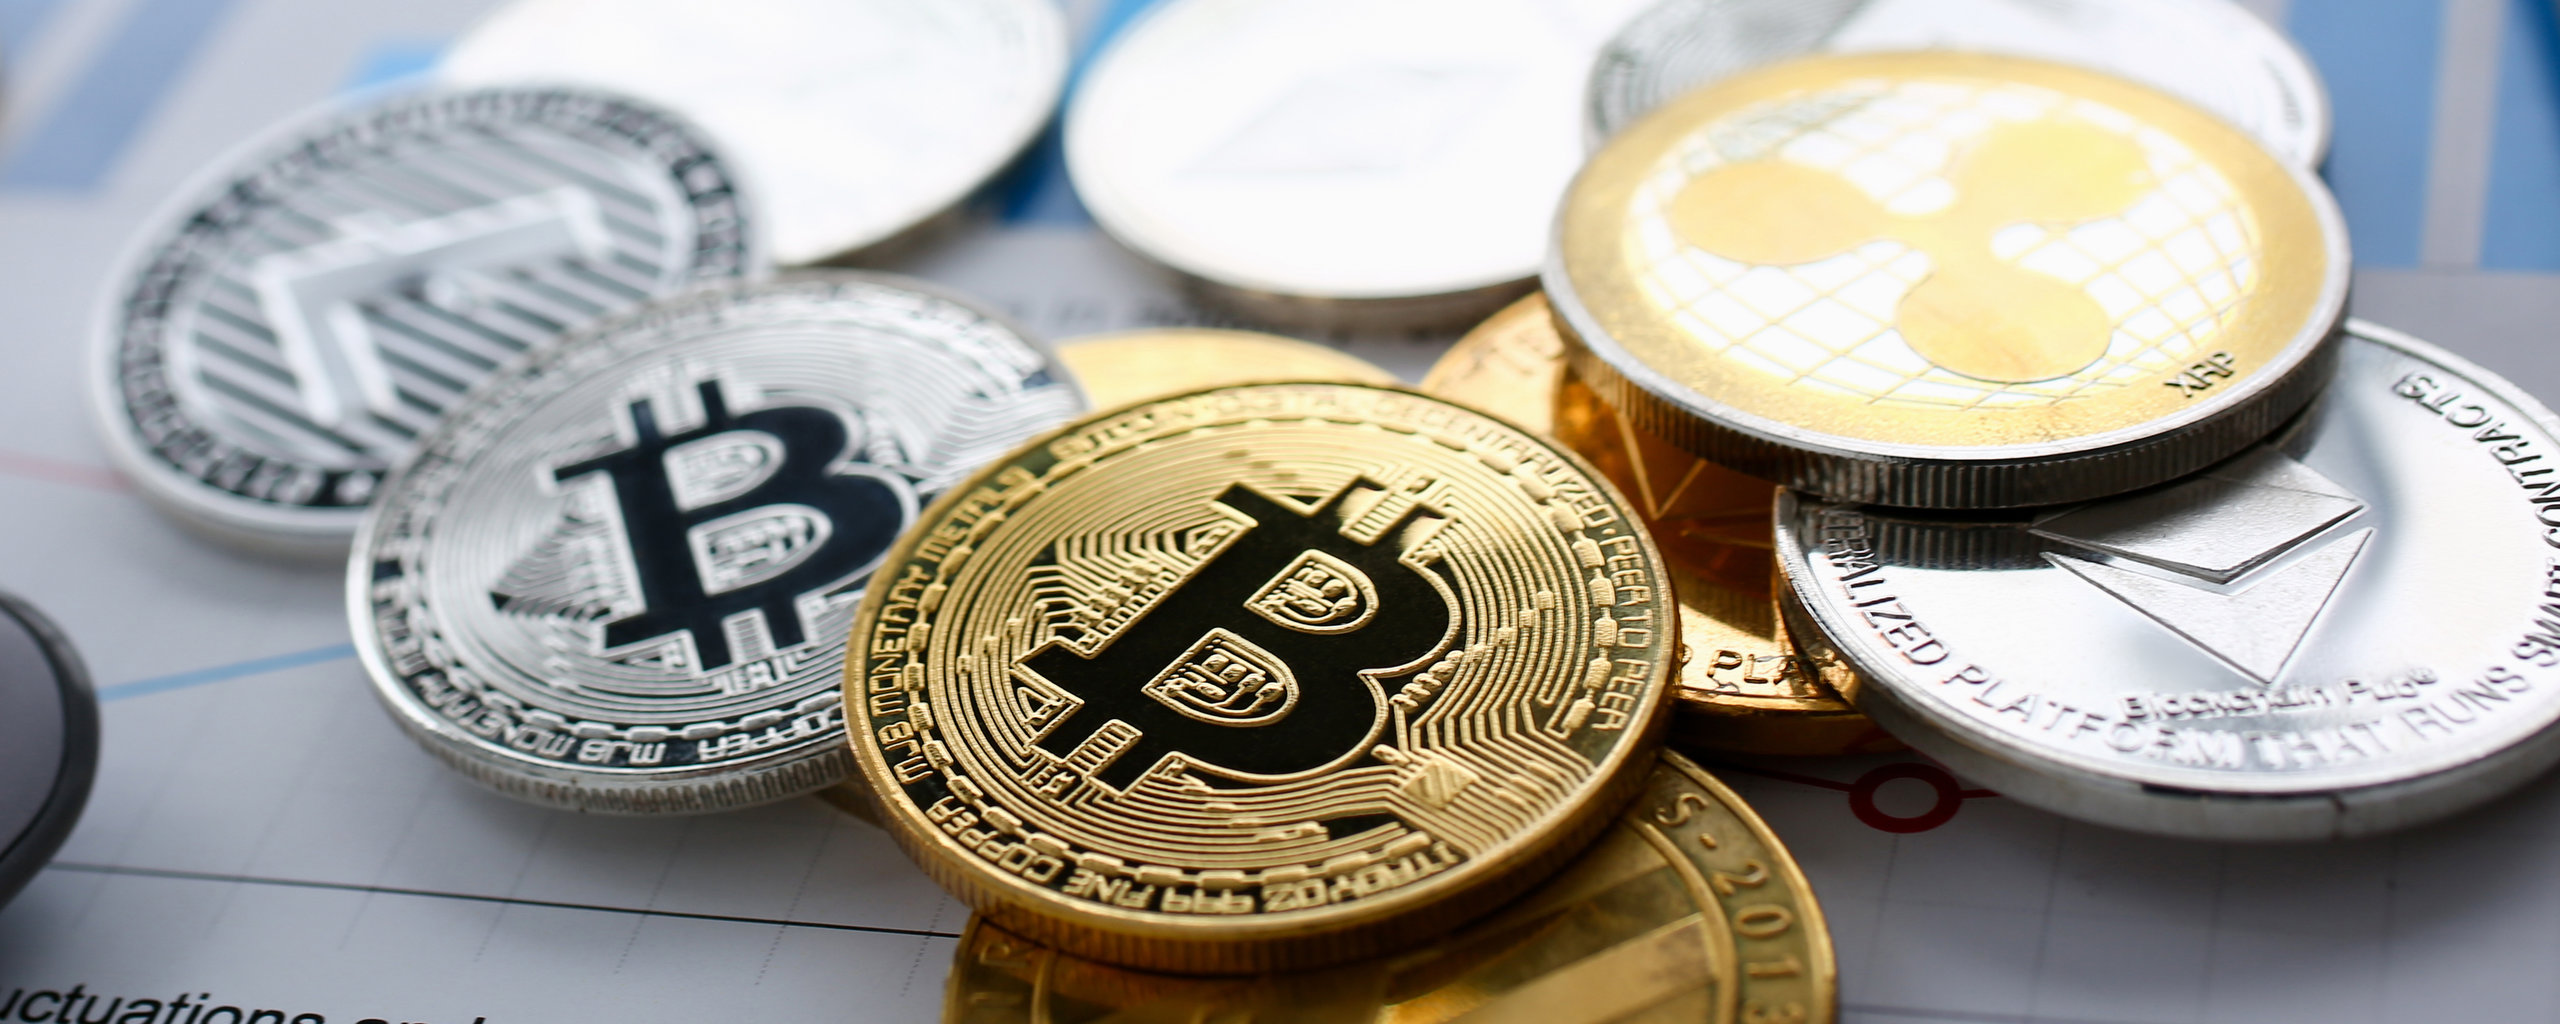 how to buy cryptocurrency with dollars